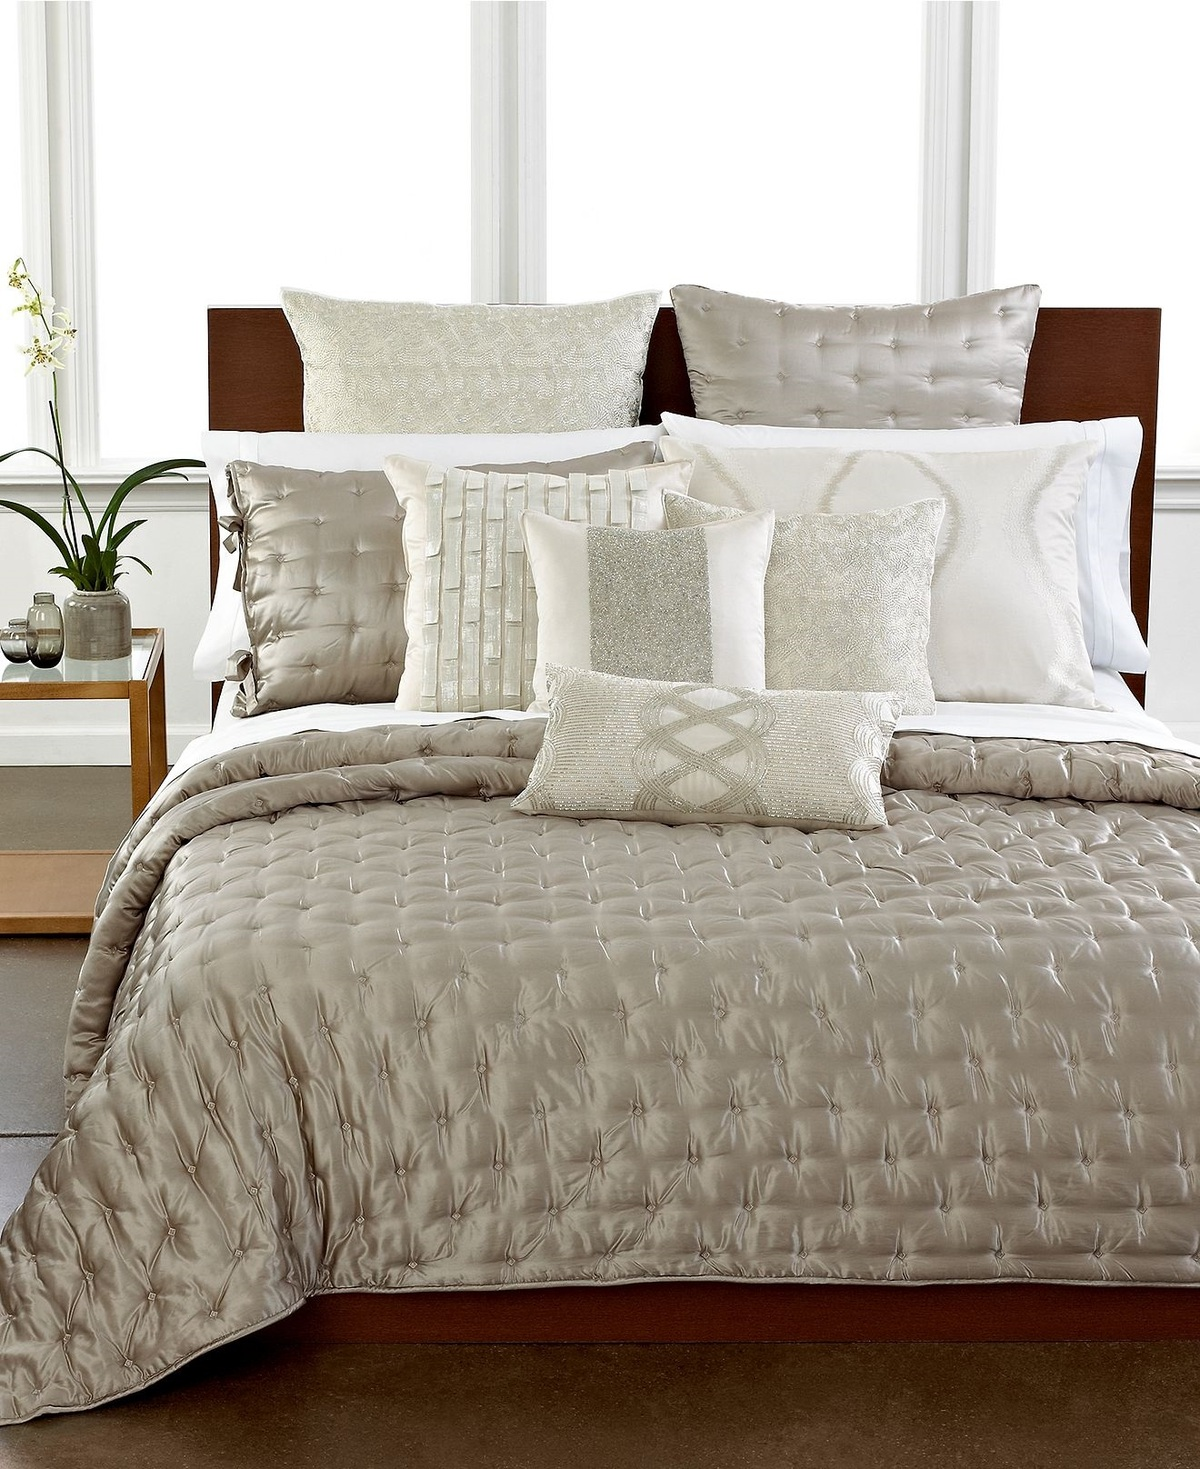 Hotel collection finest luster silk cotton king quilted for Luxury hotel 750 collection sheets